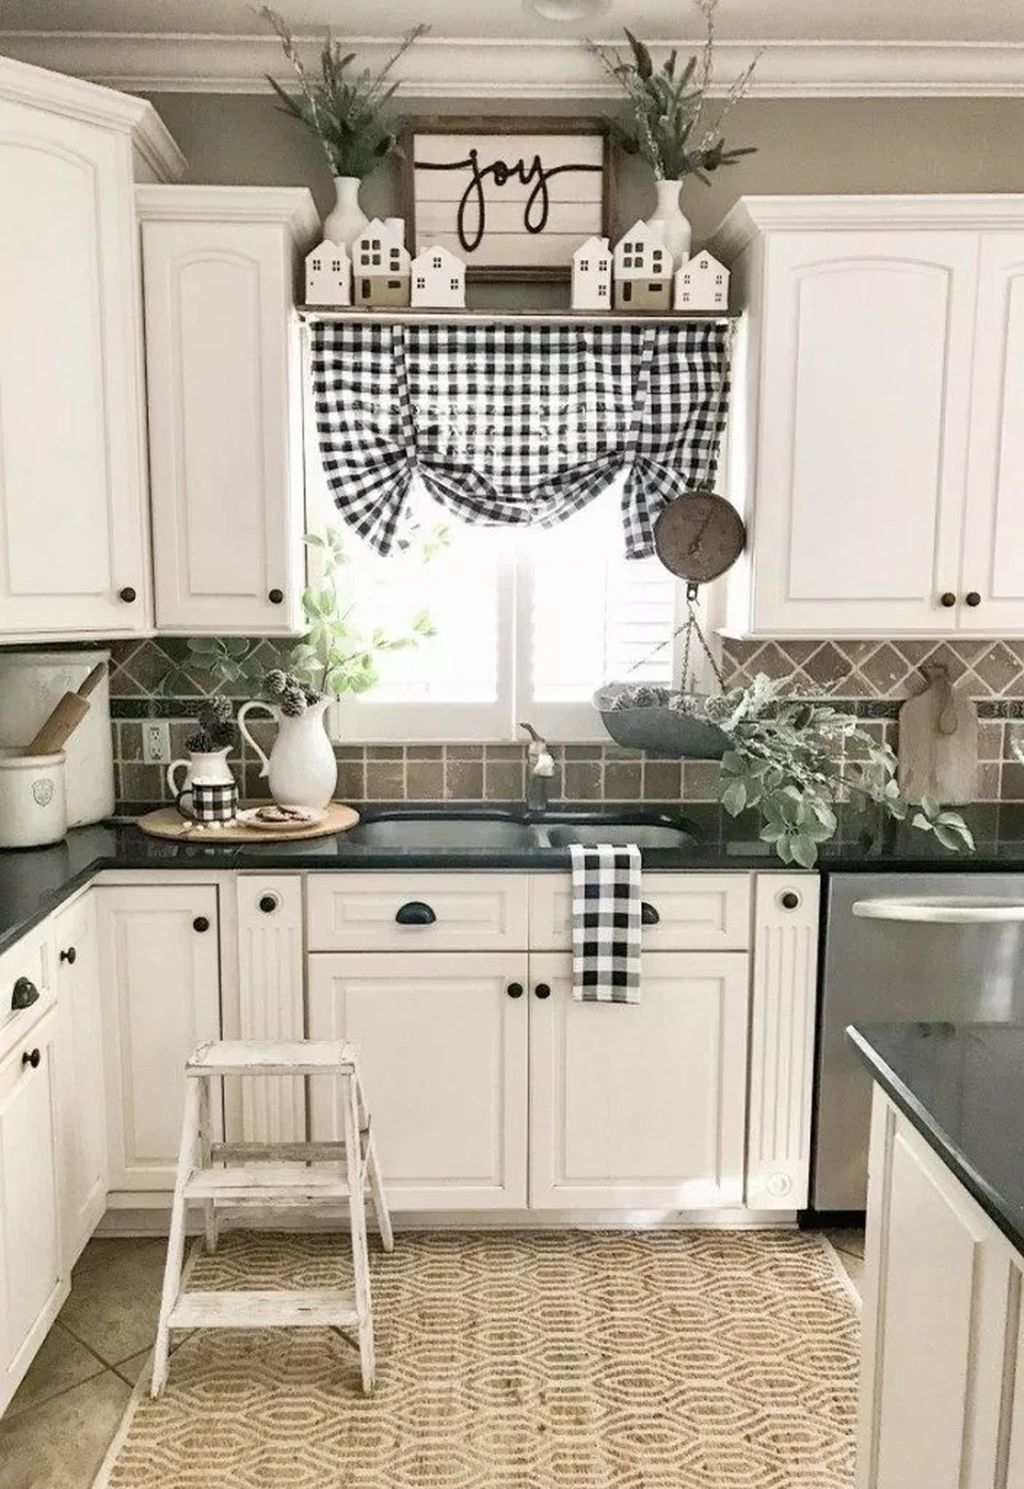 20+ Rustic Farmhouse Kitchen Ideas To Get Traditional Accent